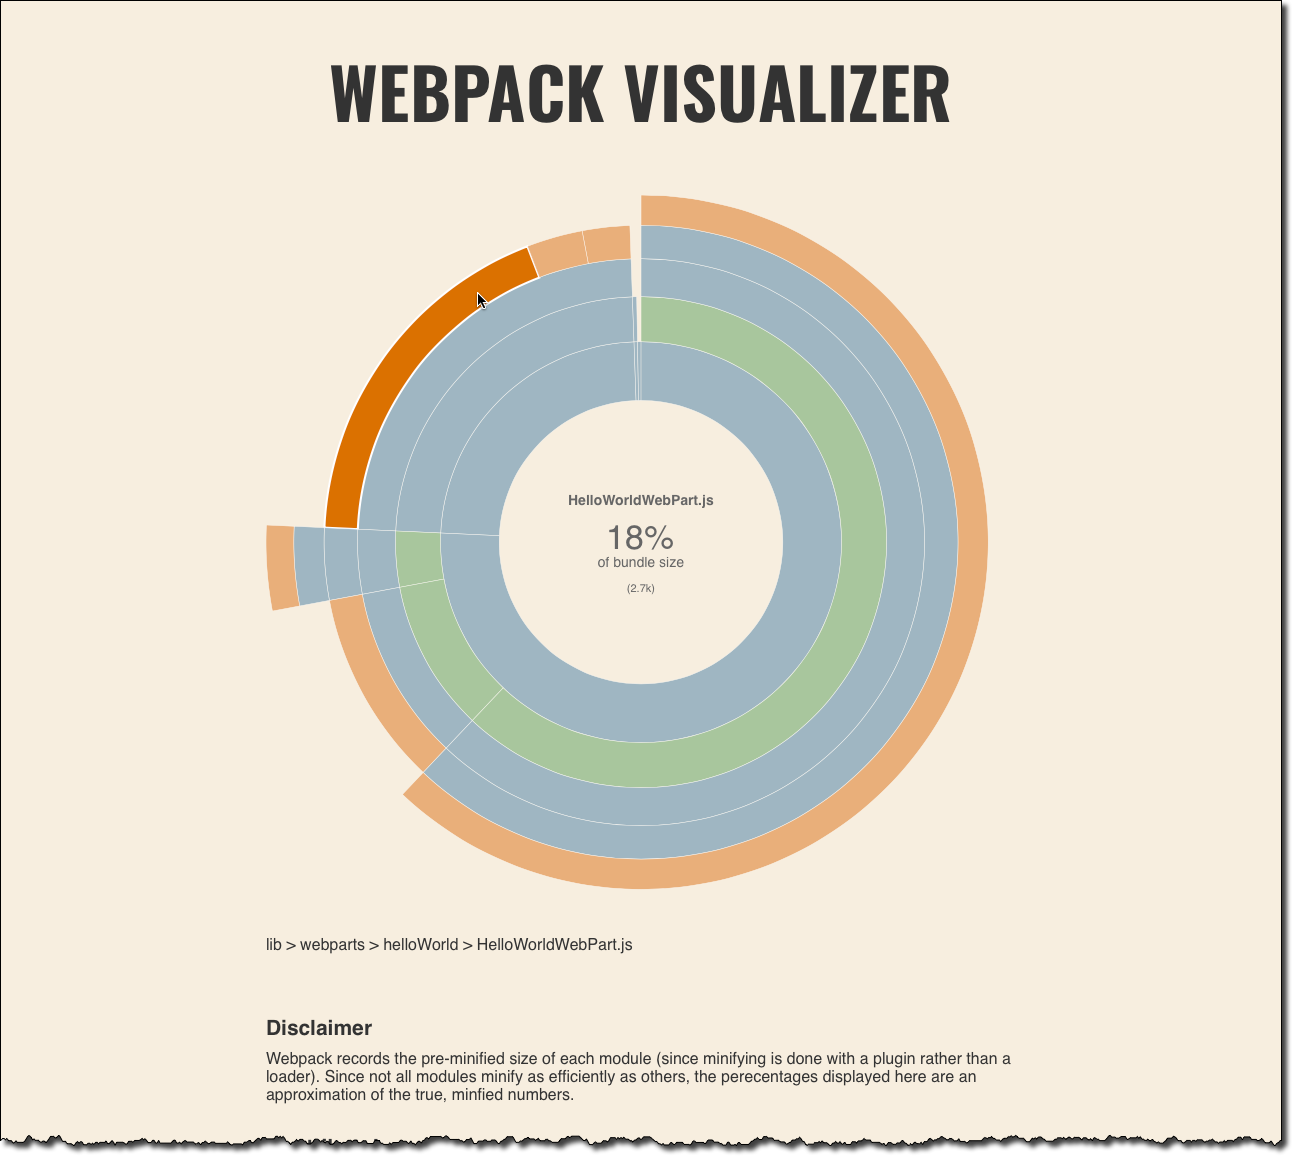 Webpack Visualizer for a standard SharePoint Framework Client-Side Web Part not using any particular framework